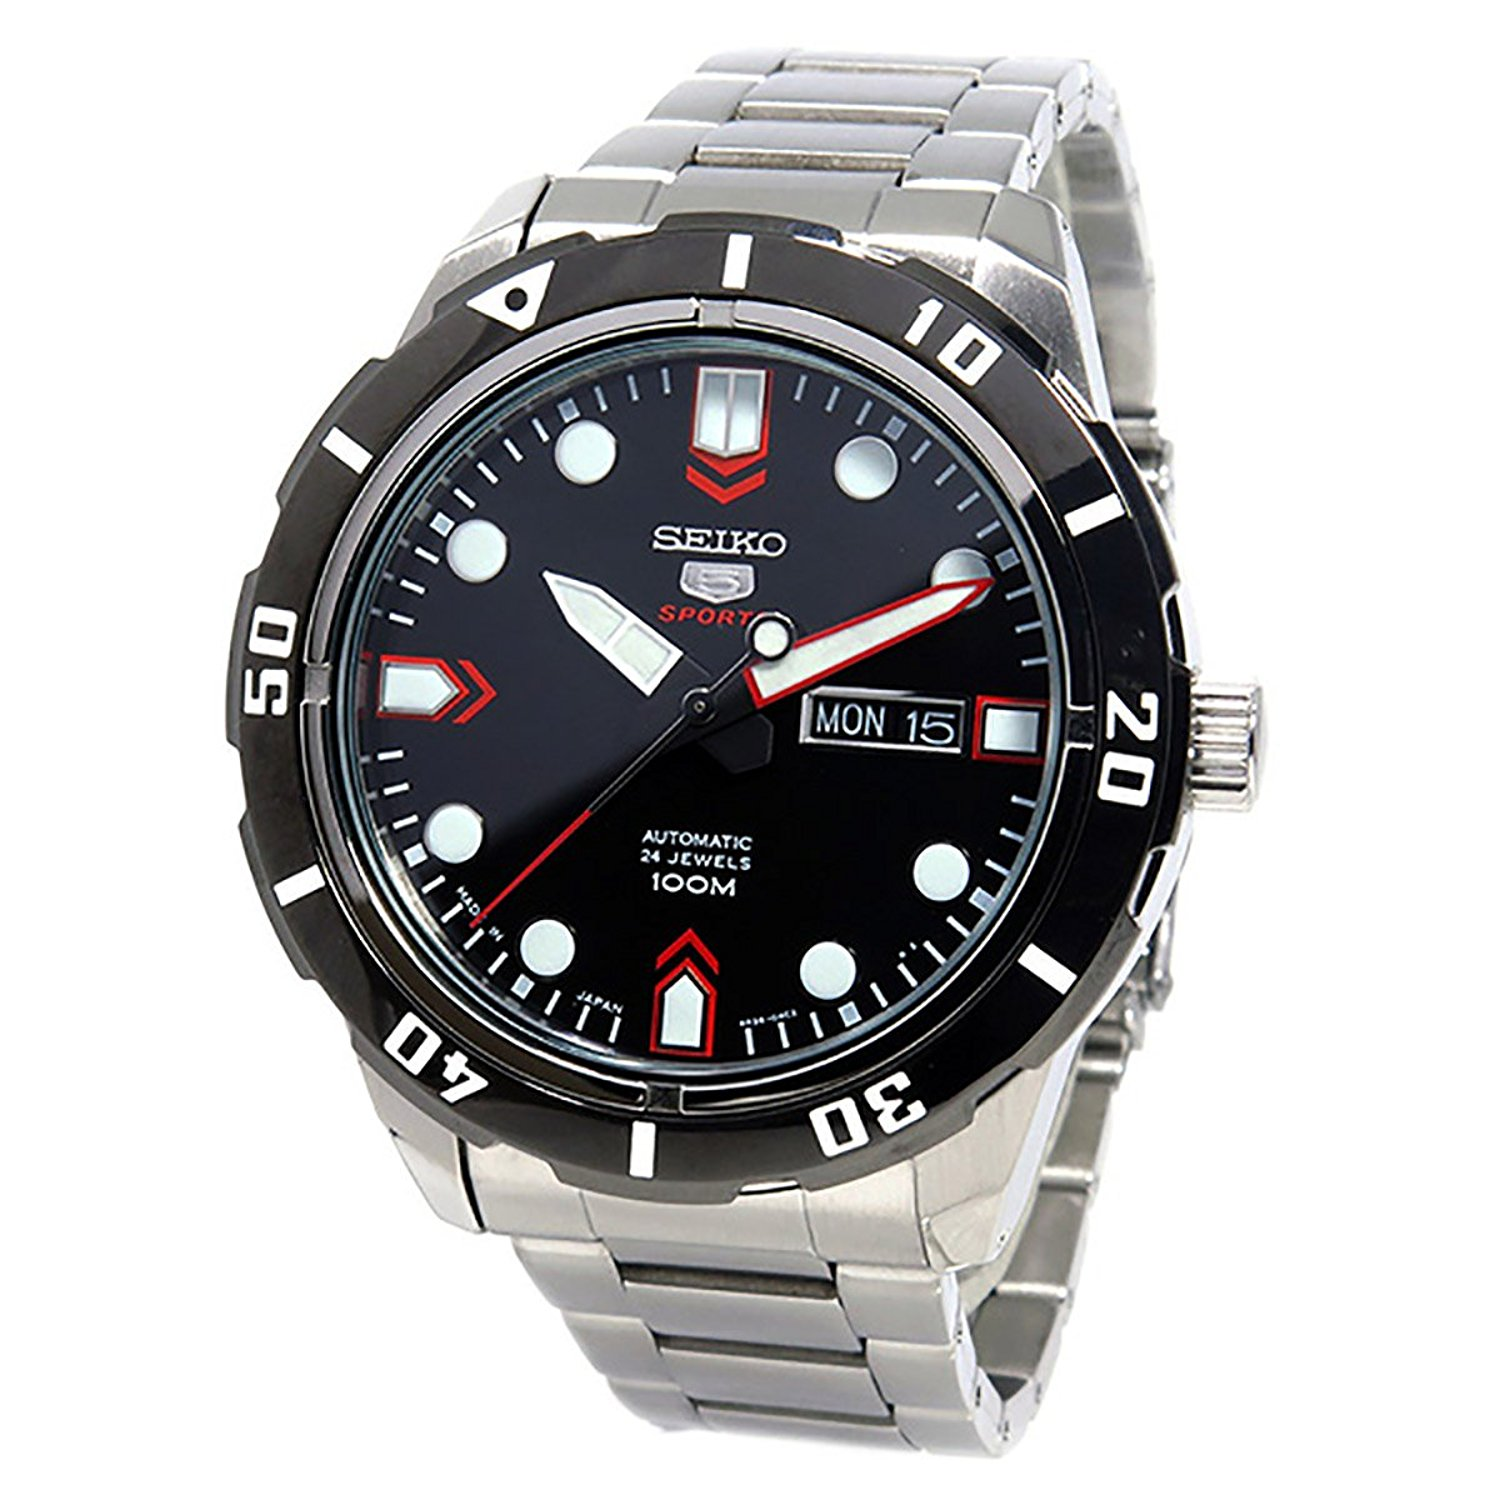 Seiko Mens 5 SPORTS Automatic Analog Sport Automatic Watch (Imported) SRP673J1